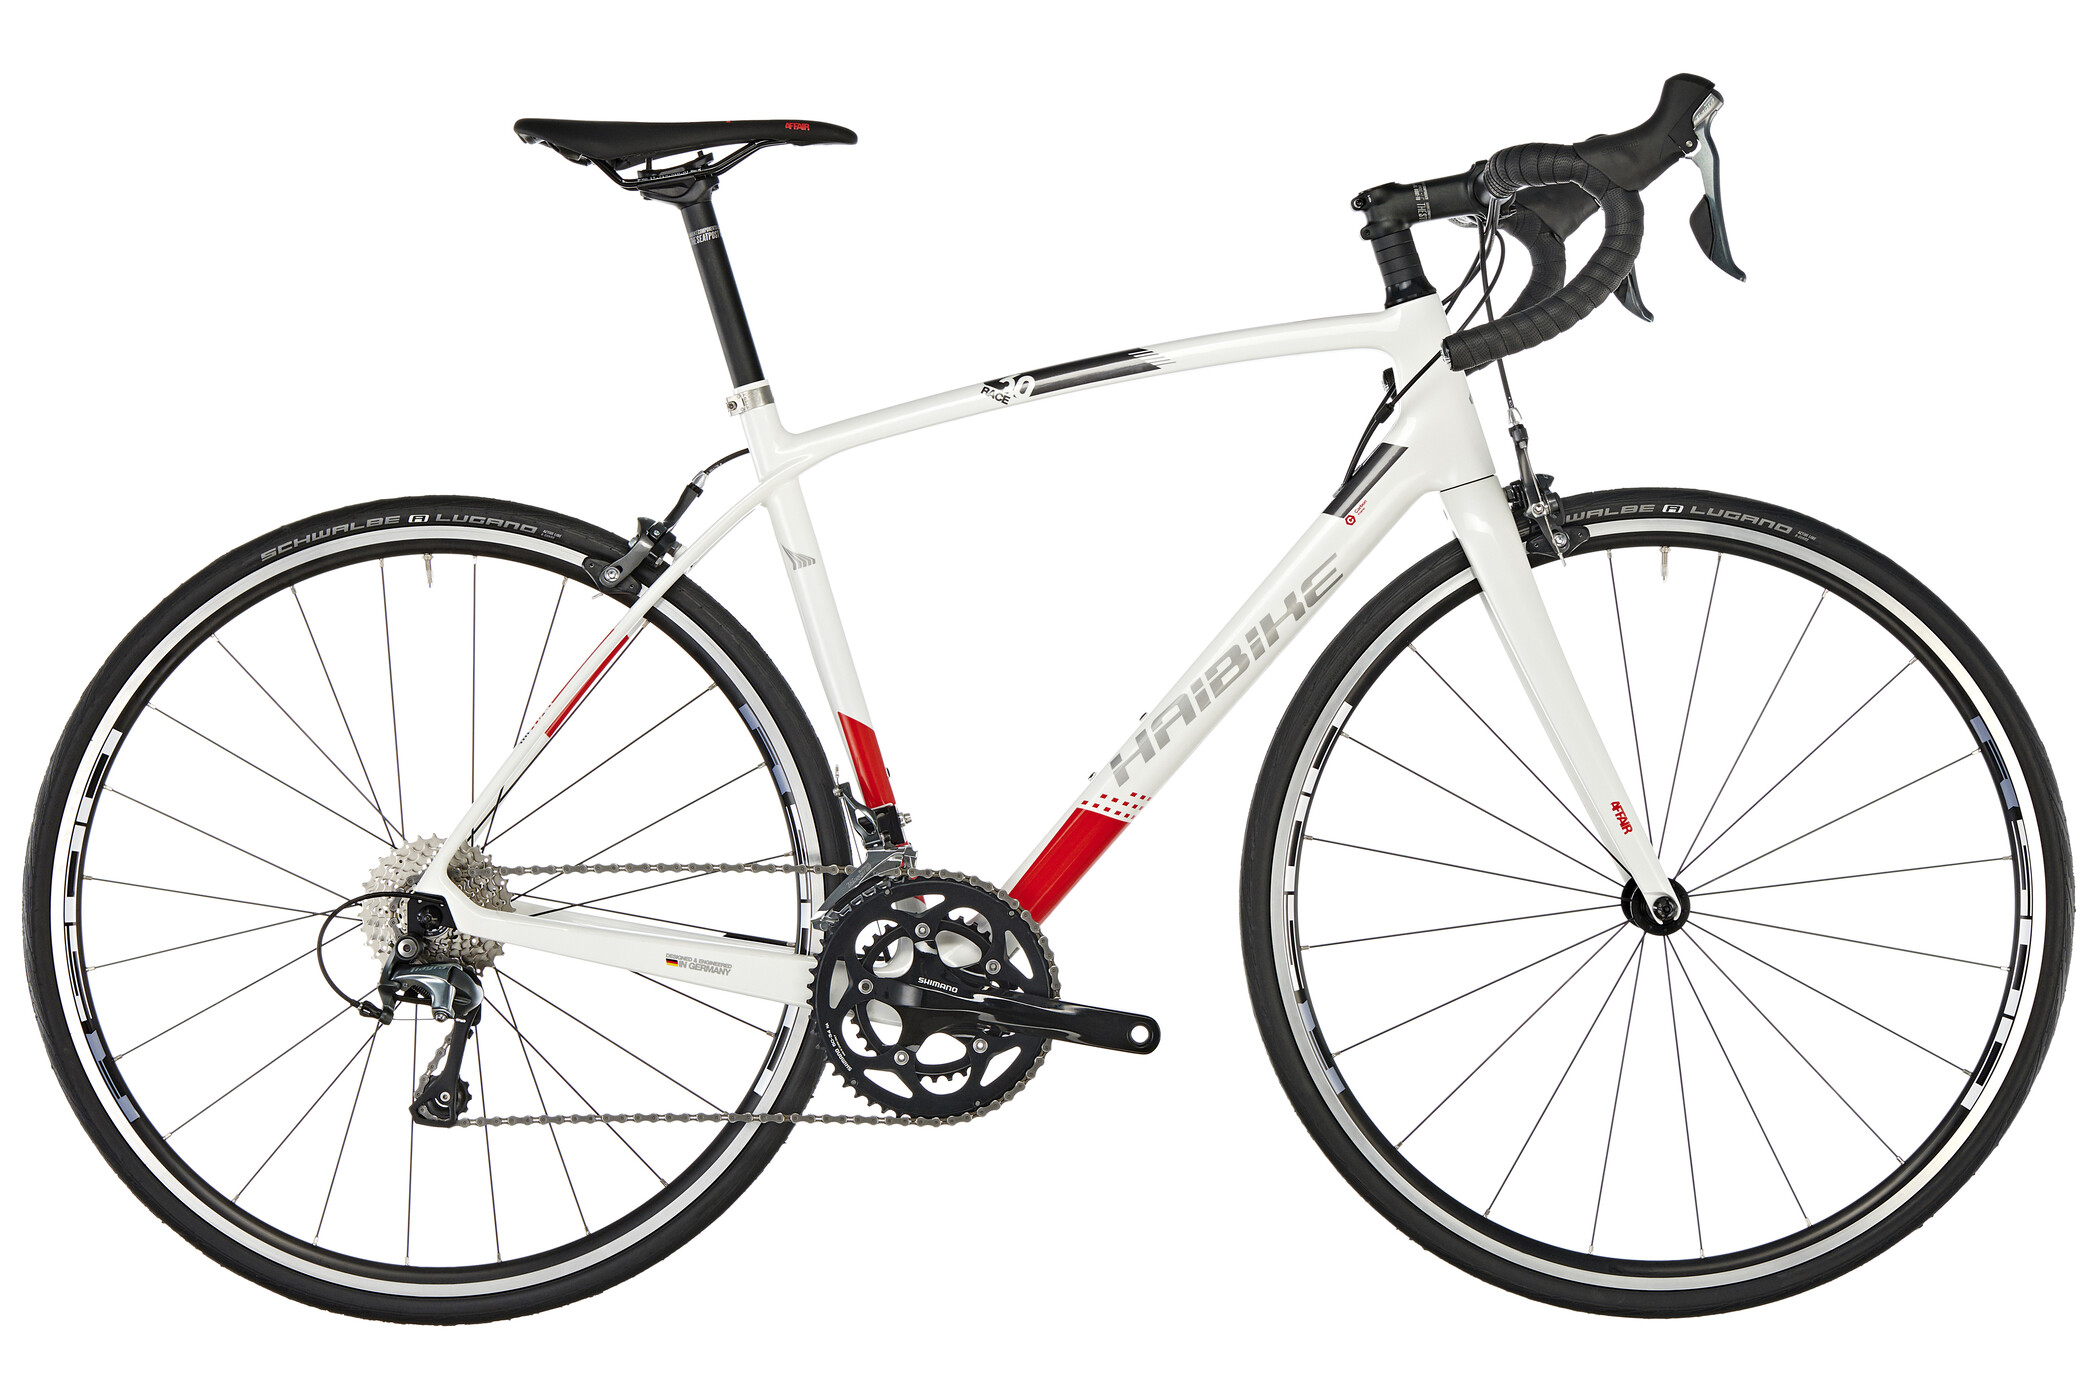 HAIBIKE Affair Race 6.0, white/red/anthracite | Road bikes